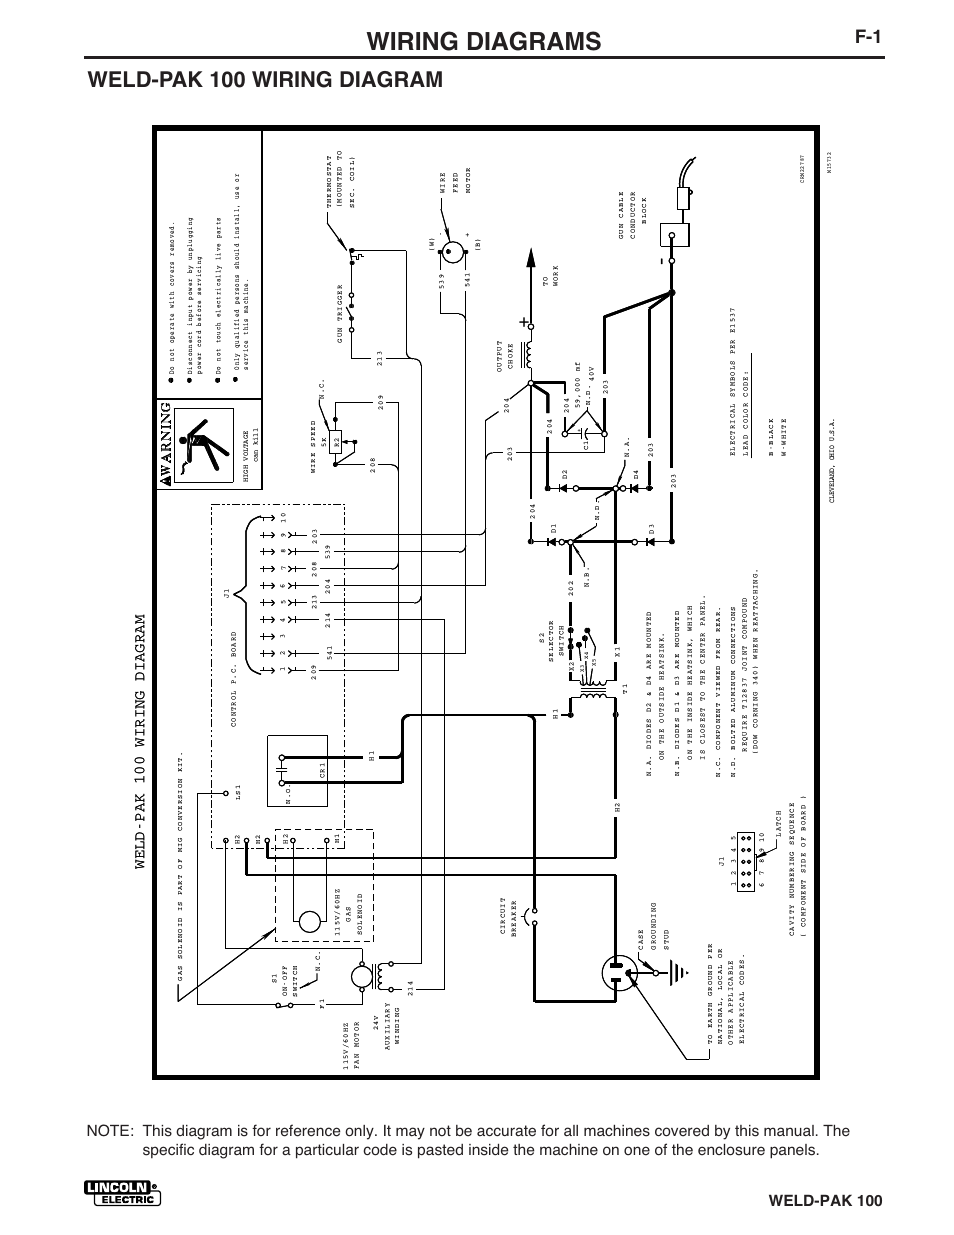 Magnetic Trigger Wiring Diagram